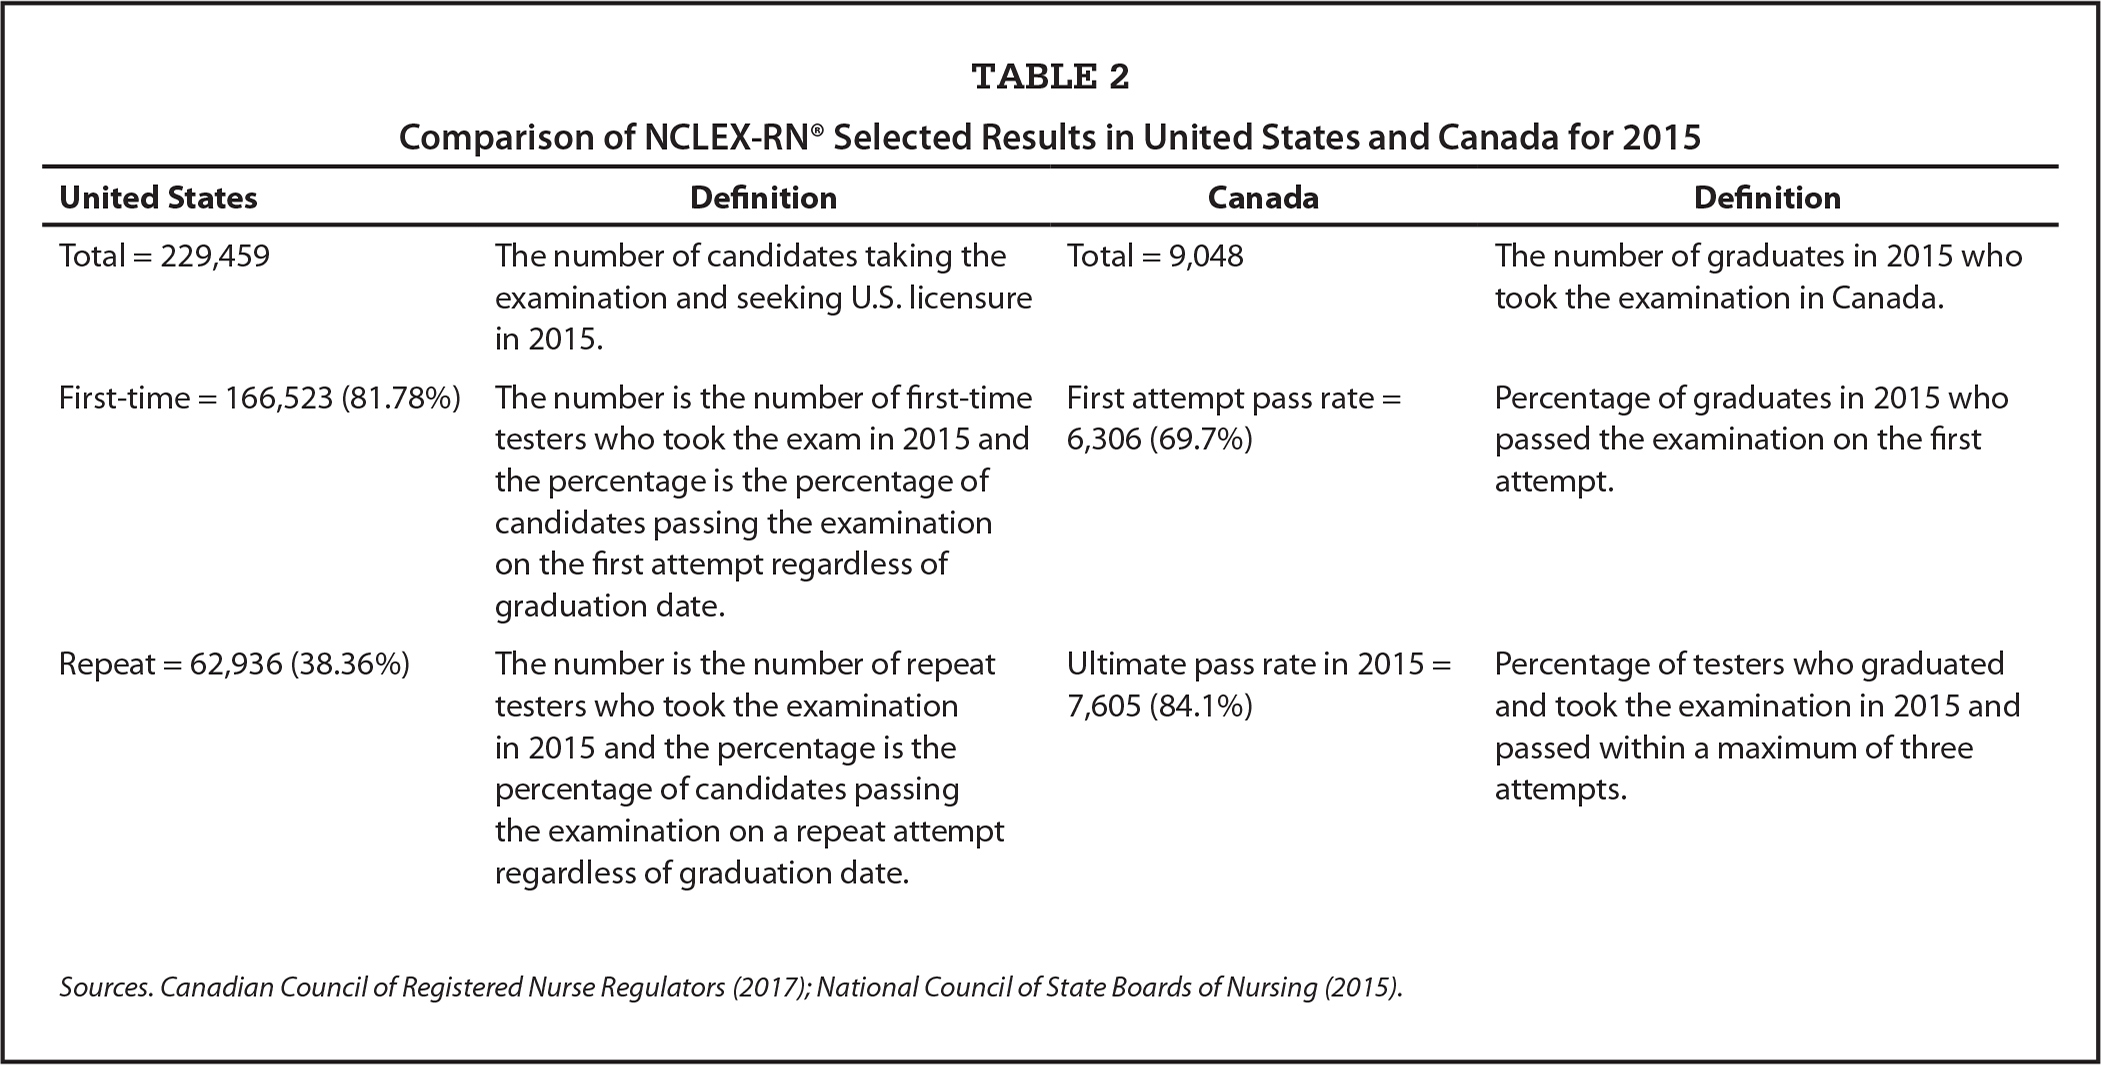 Comparison of NCLEX-RN® Selected Results in United States and Canada for 2015